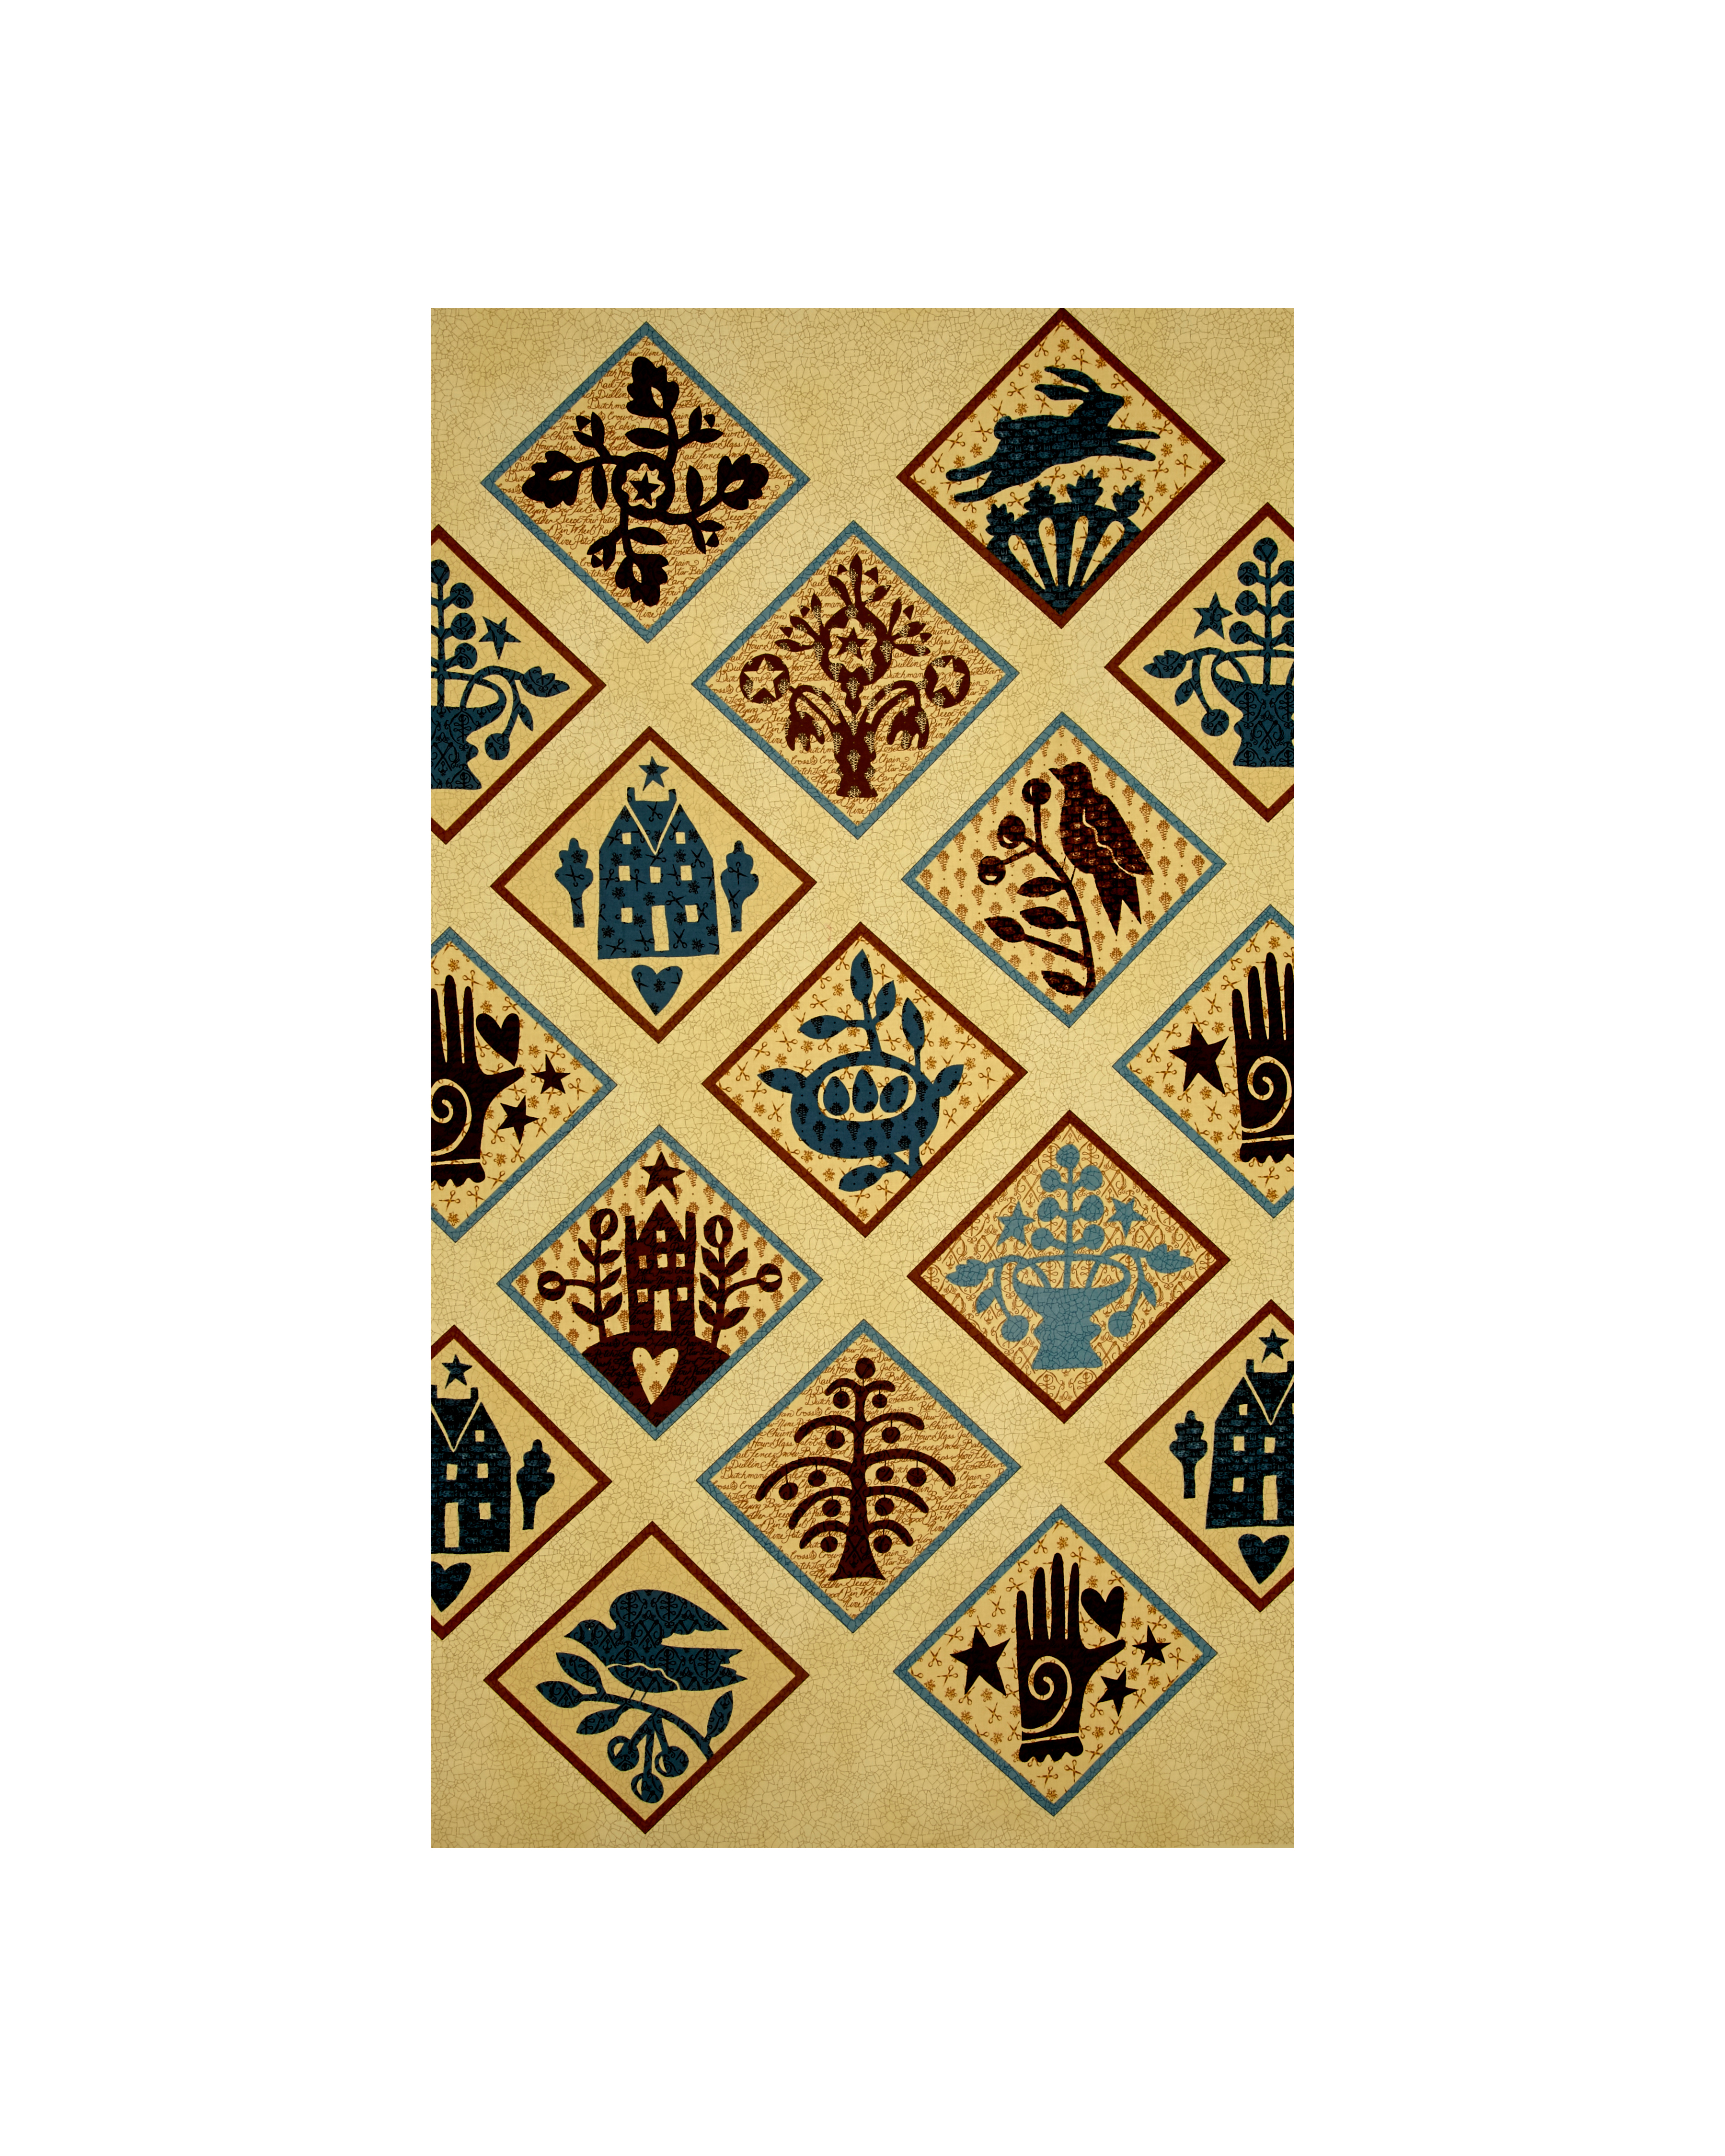 Moda Piecemakers Patches Ivory Fabric by Moda in USA